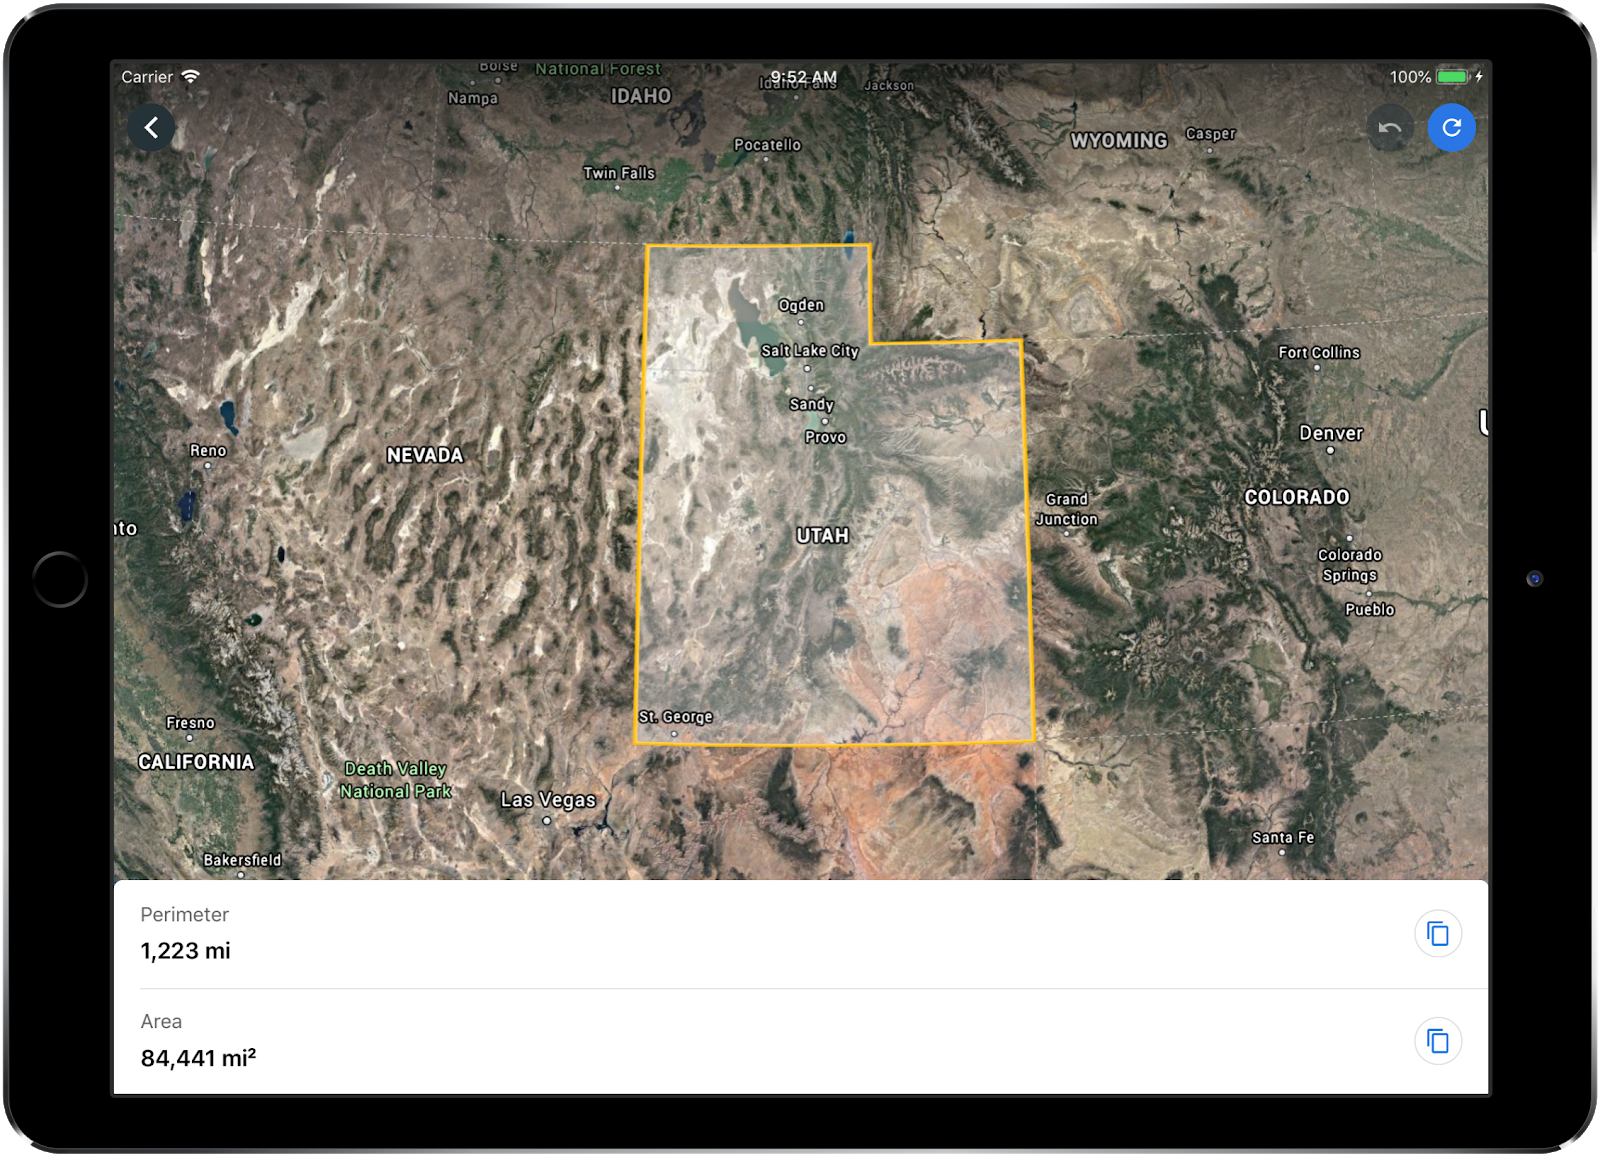 Introducing the Measure Tool for Google Earth on iOS on google maps for windows phone, google maps for windows 8, gps maps for ipad, google maps for iphone, google maps for kindle fire, google maps for android, google play for ipad, google maps for car, google drive for ipad, google chrome for ipad,